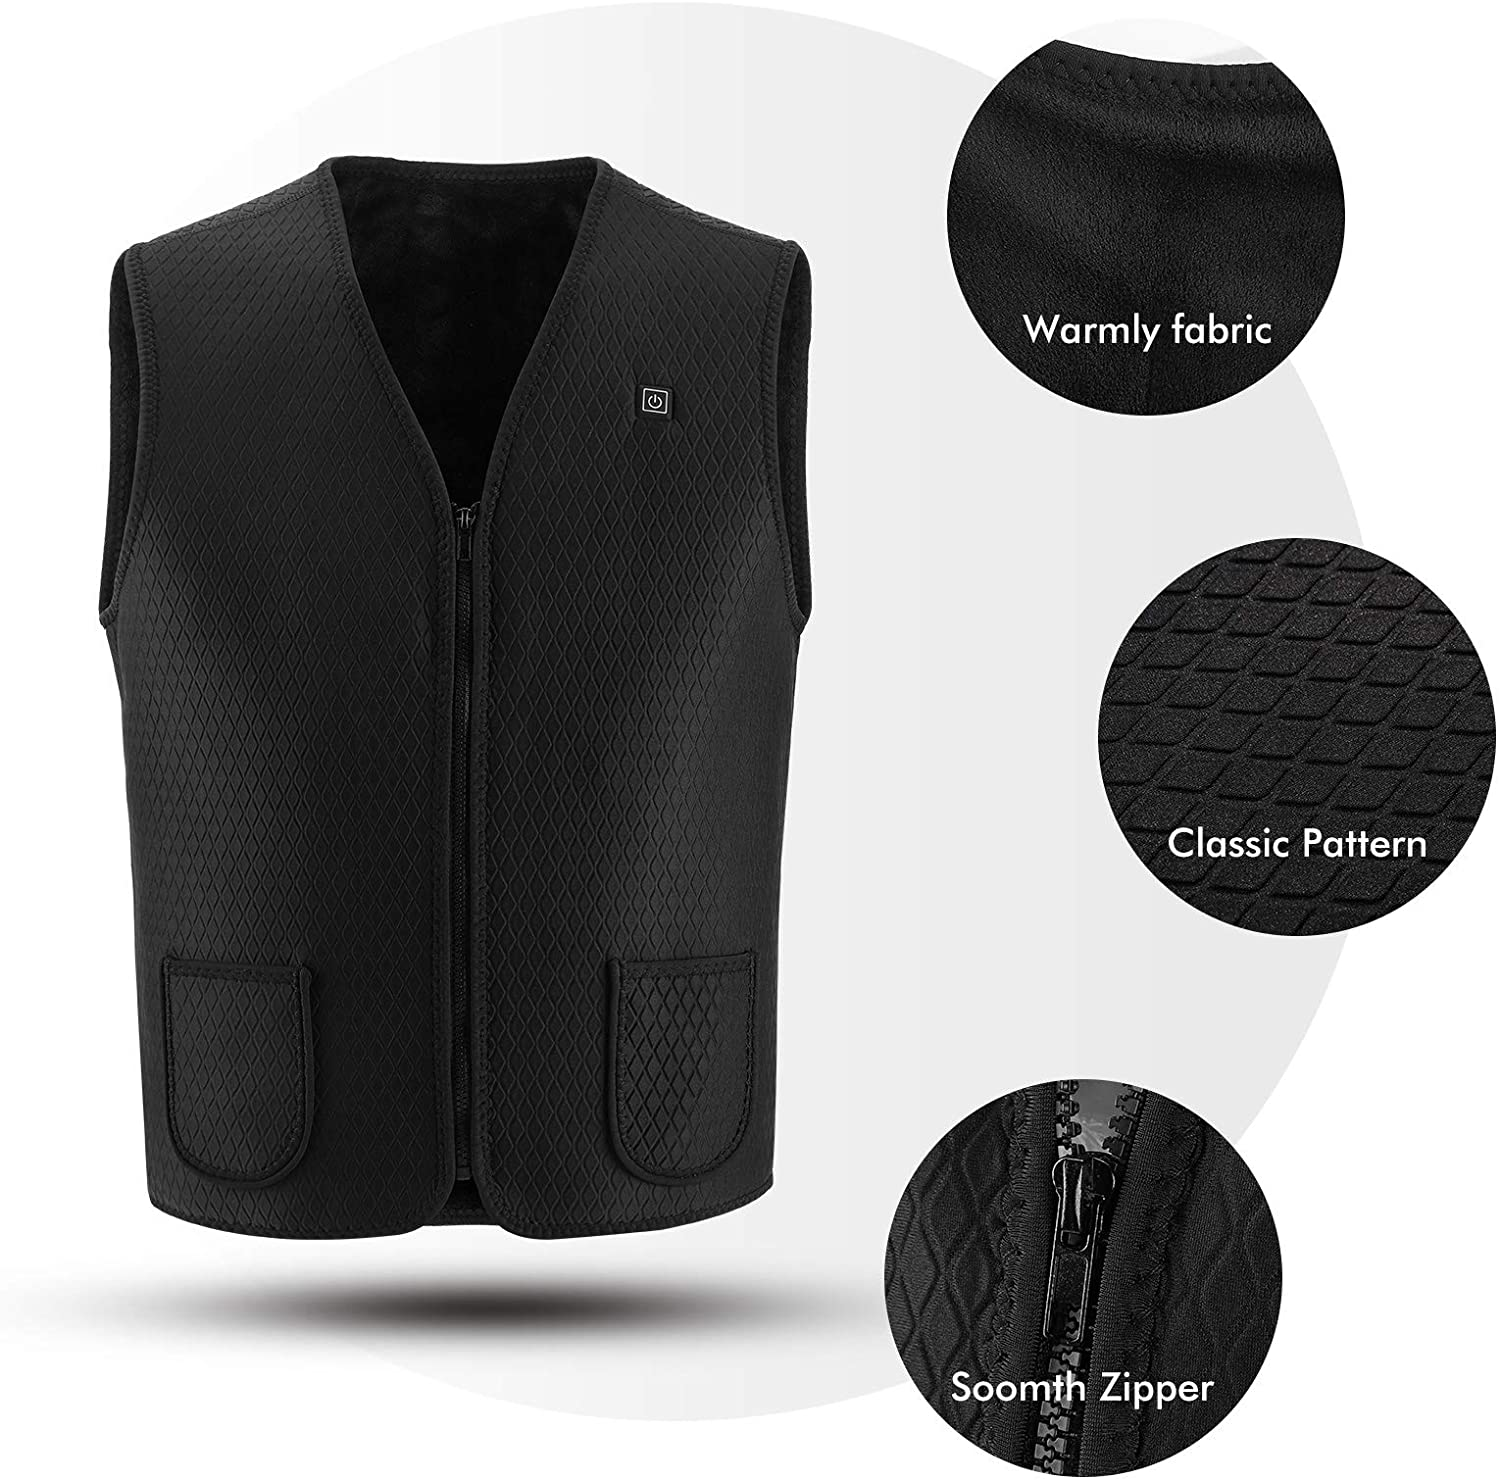 128ve980 Women Men Heated Vest with 10000mAh battery, Washable USB Charging Electric Heated Jacket